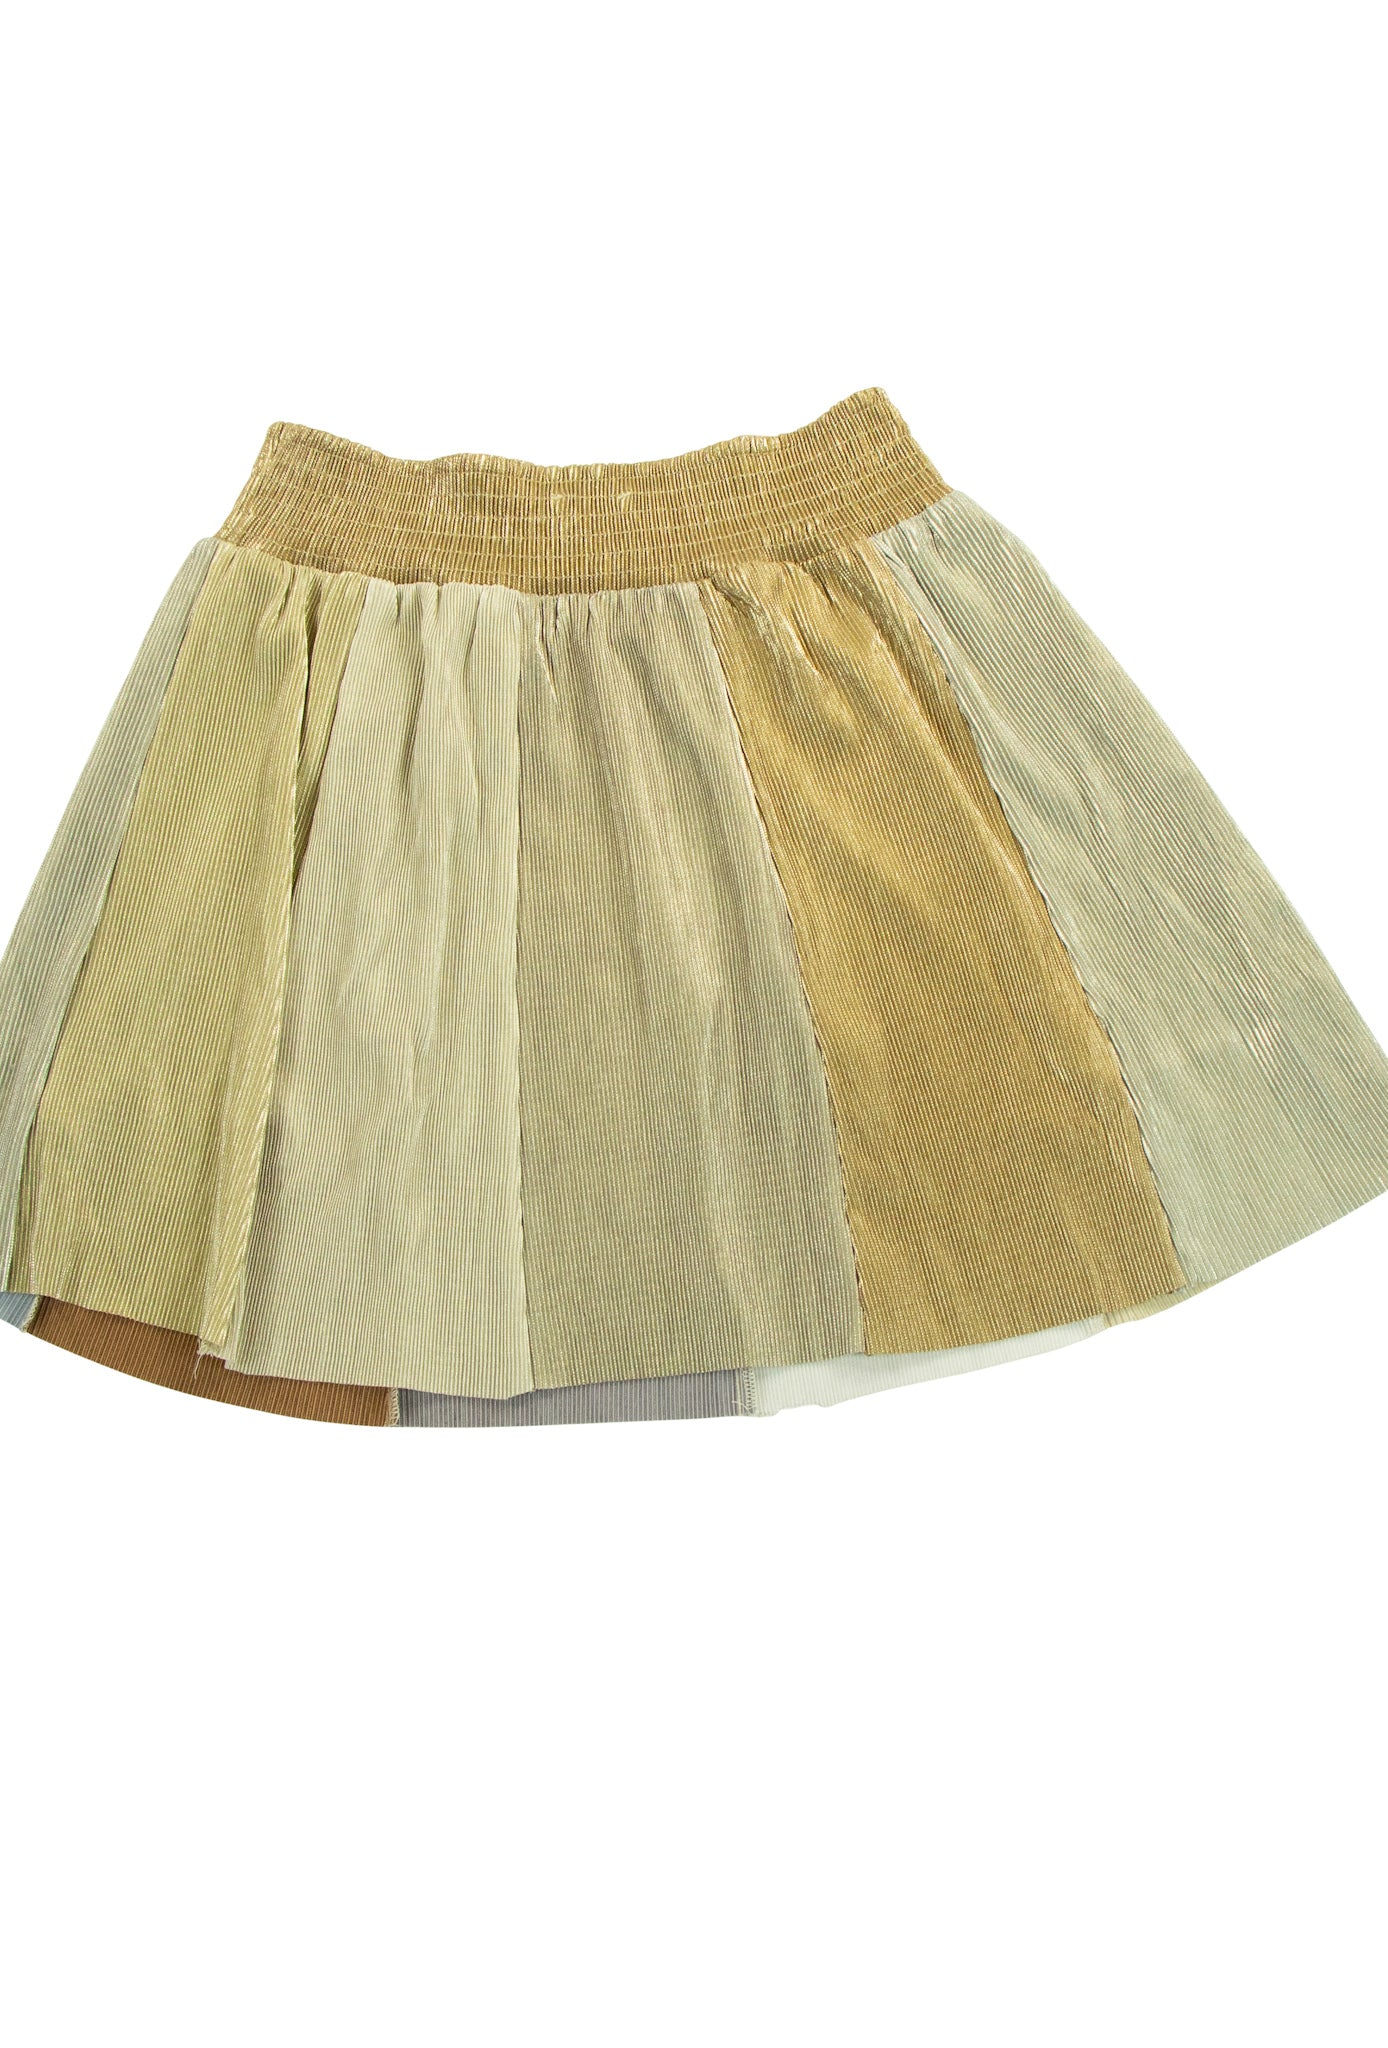 Main Event Skirt in Gold